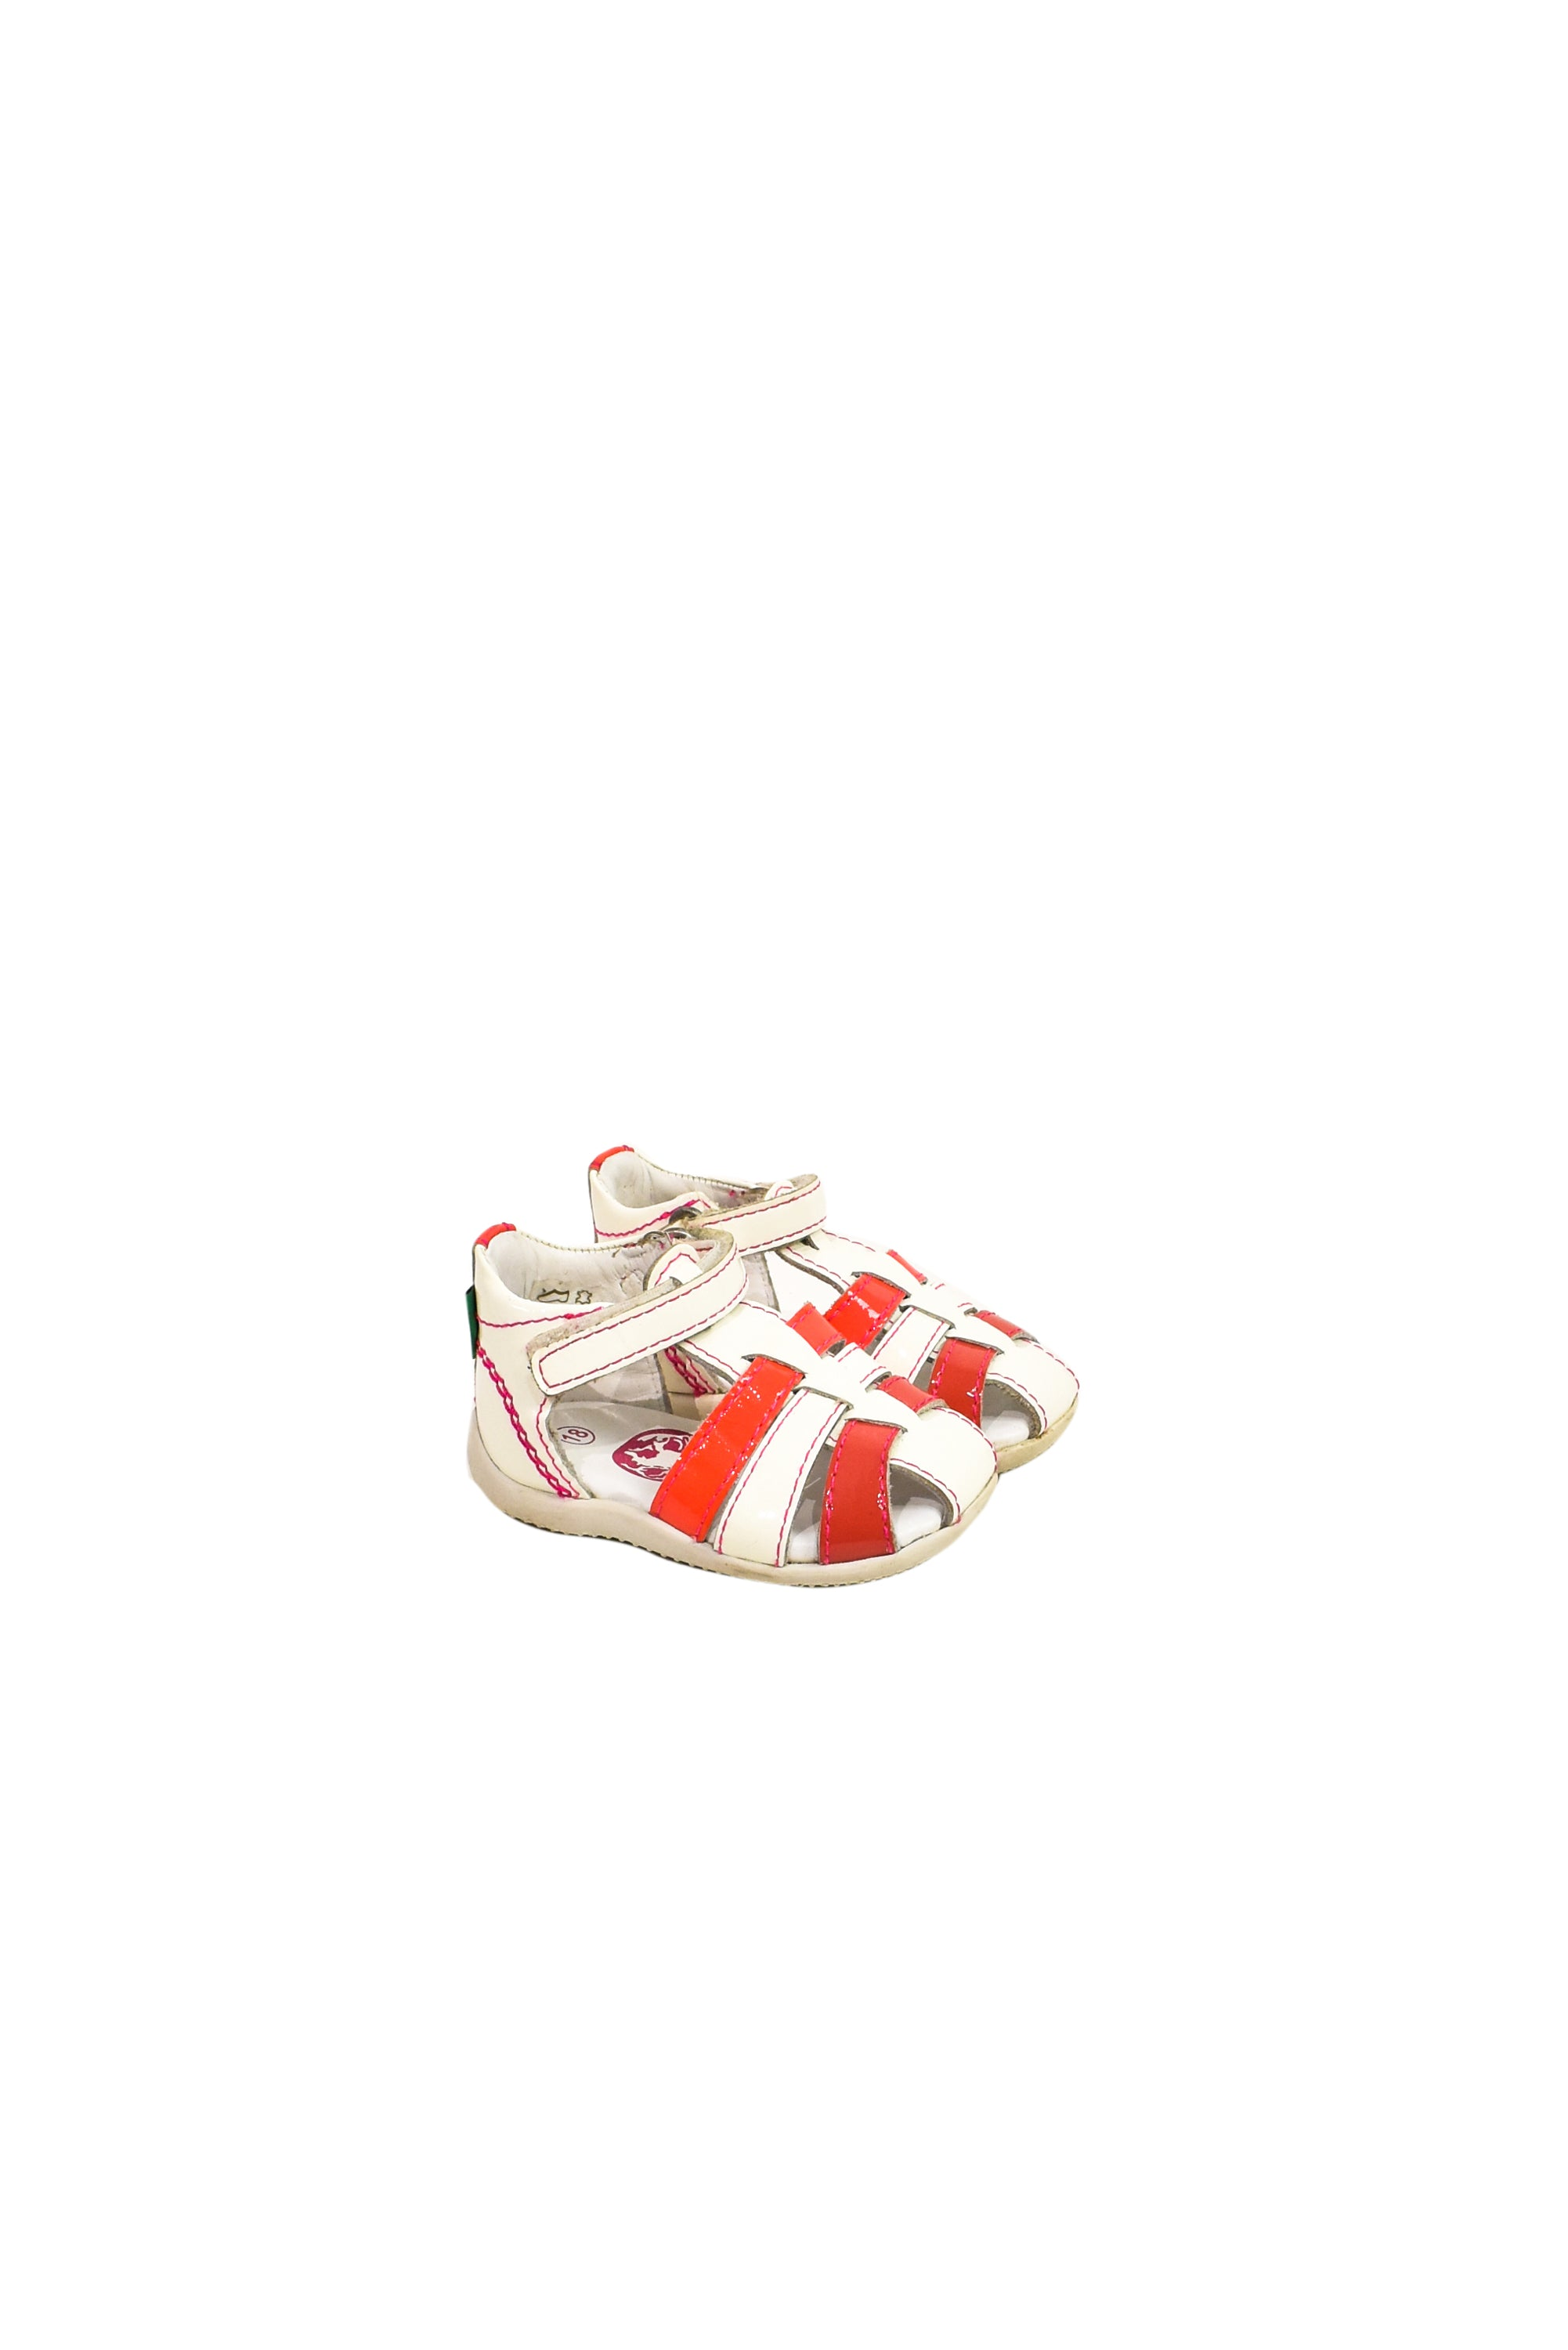 10021200 Kickers Baby~Shoes 6-12M (EU 18) at Retykle